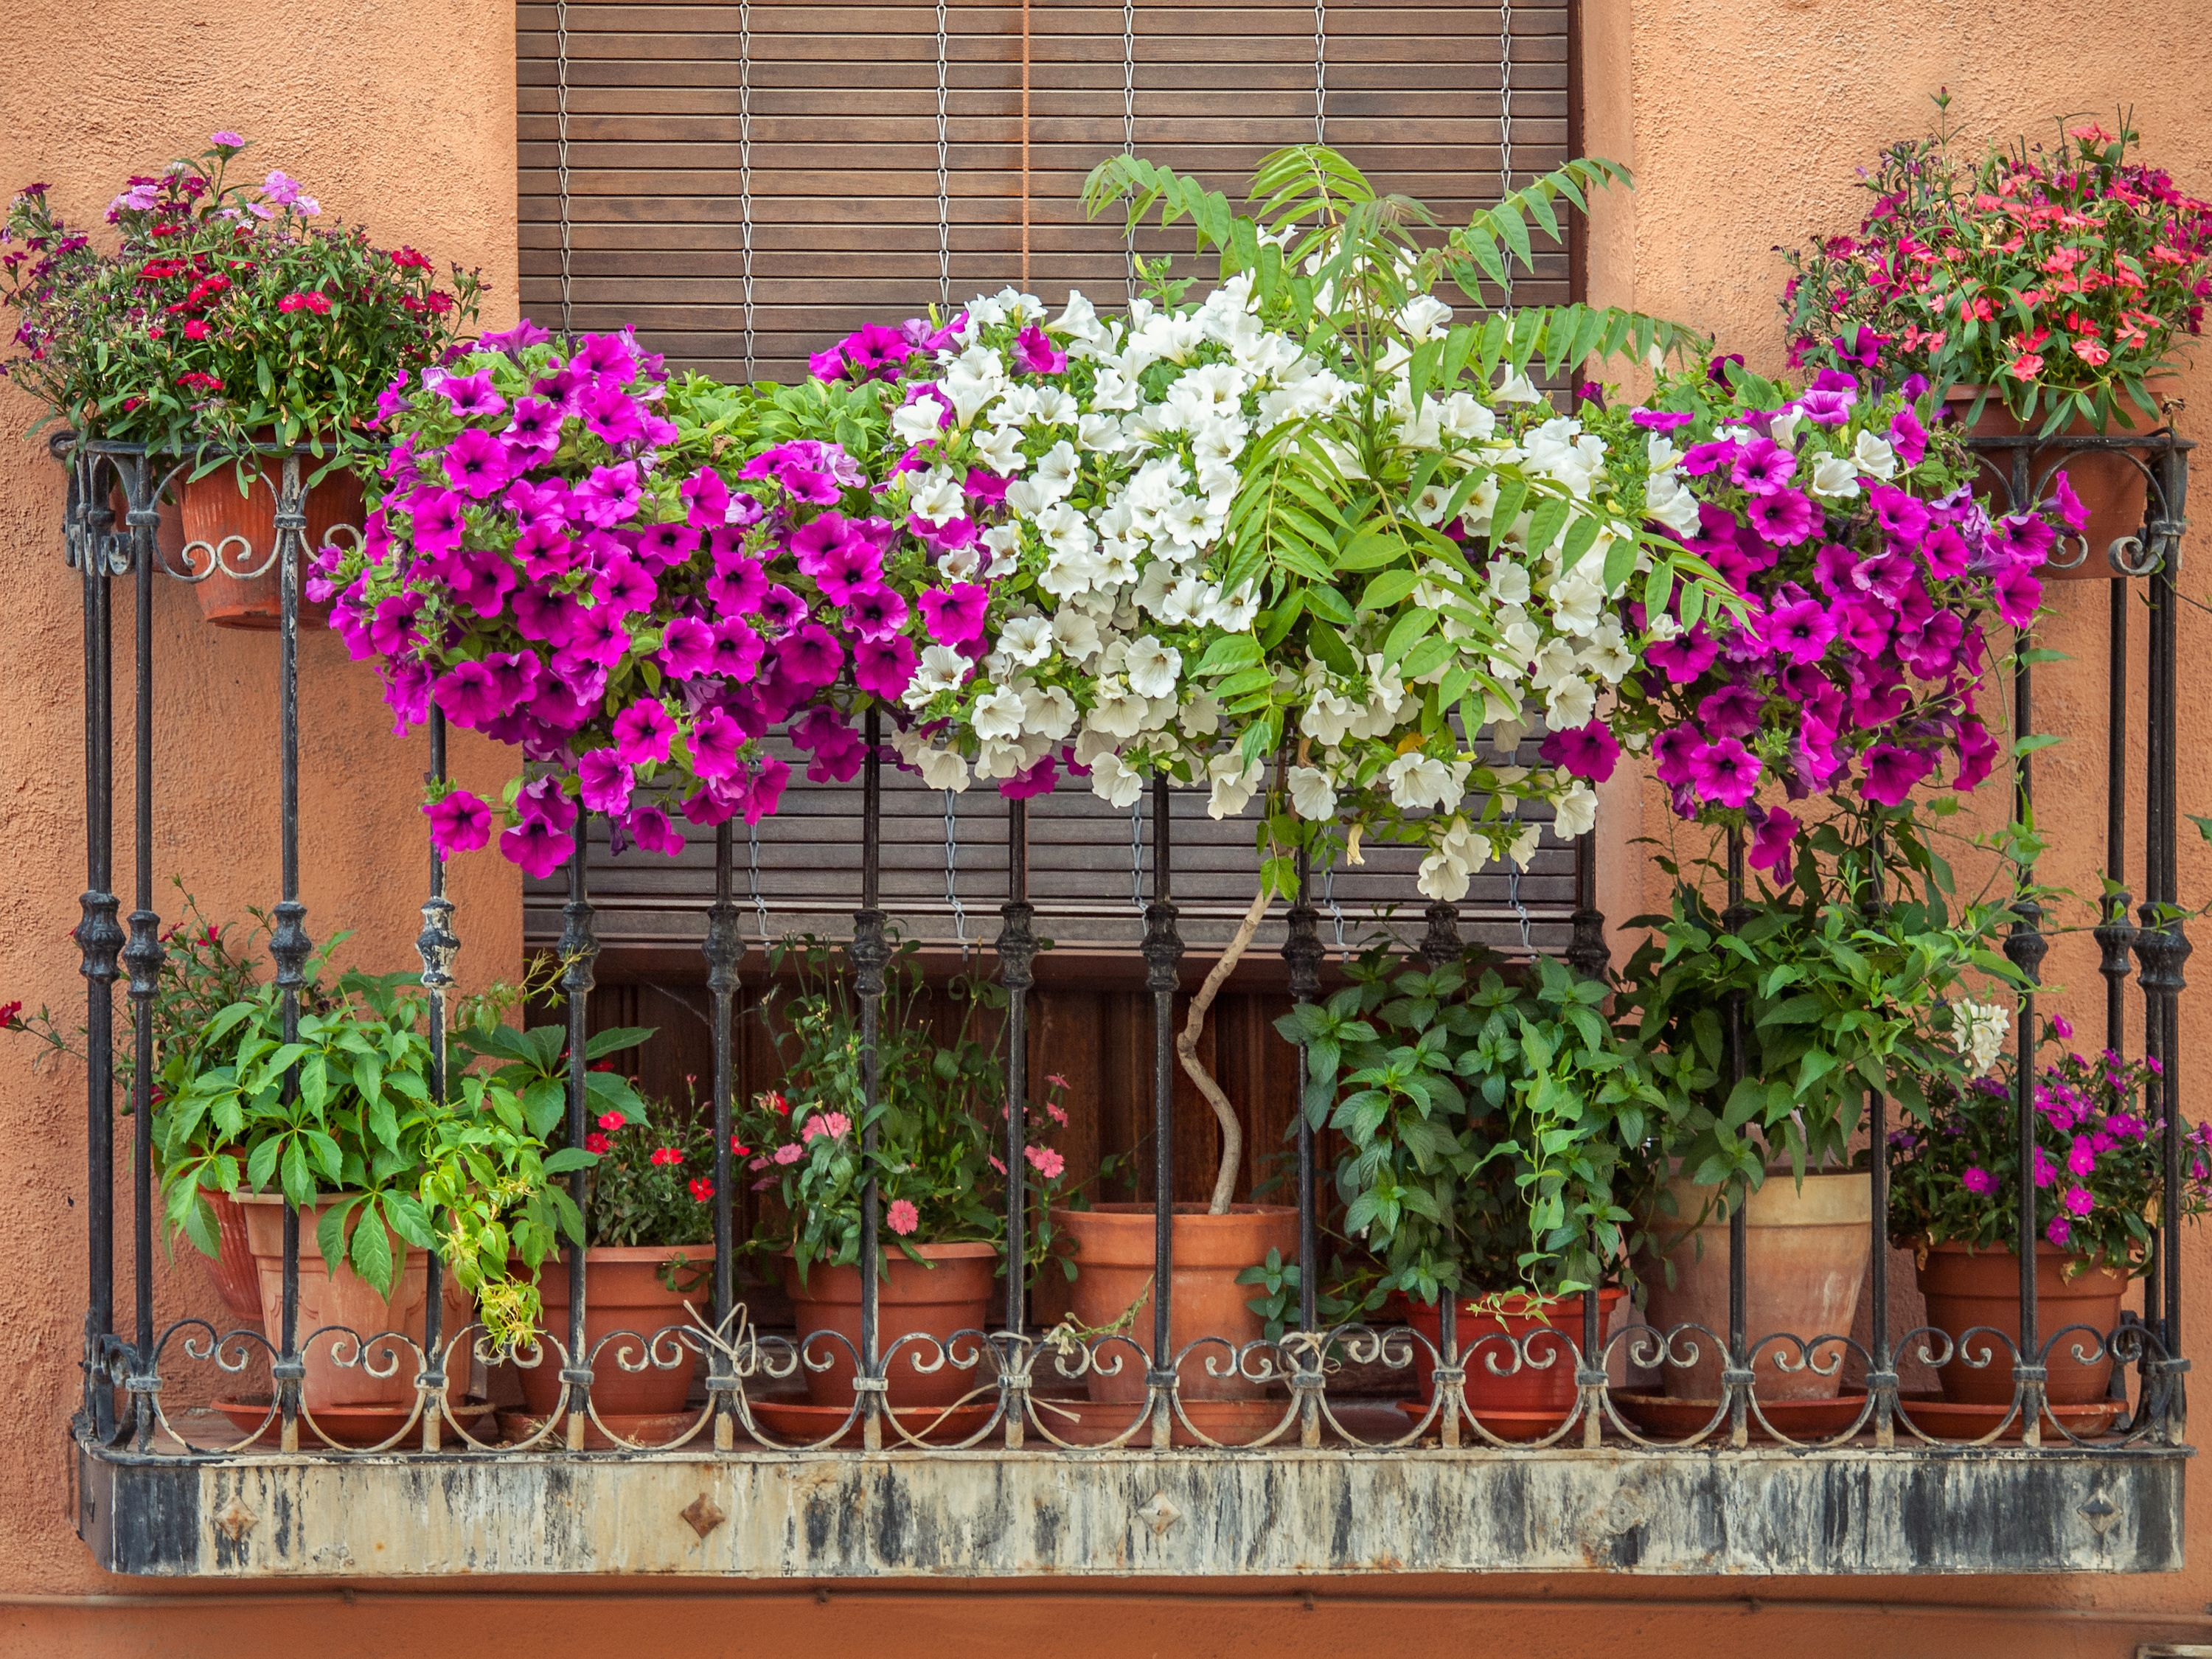 Flowers on the balcony.